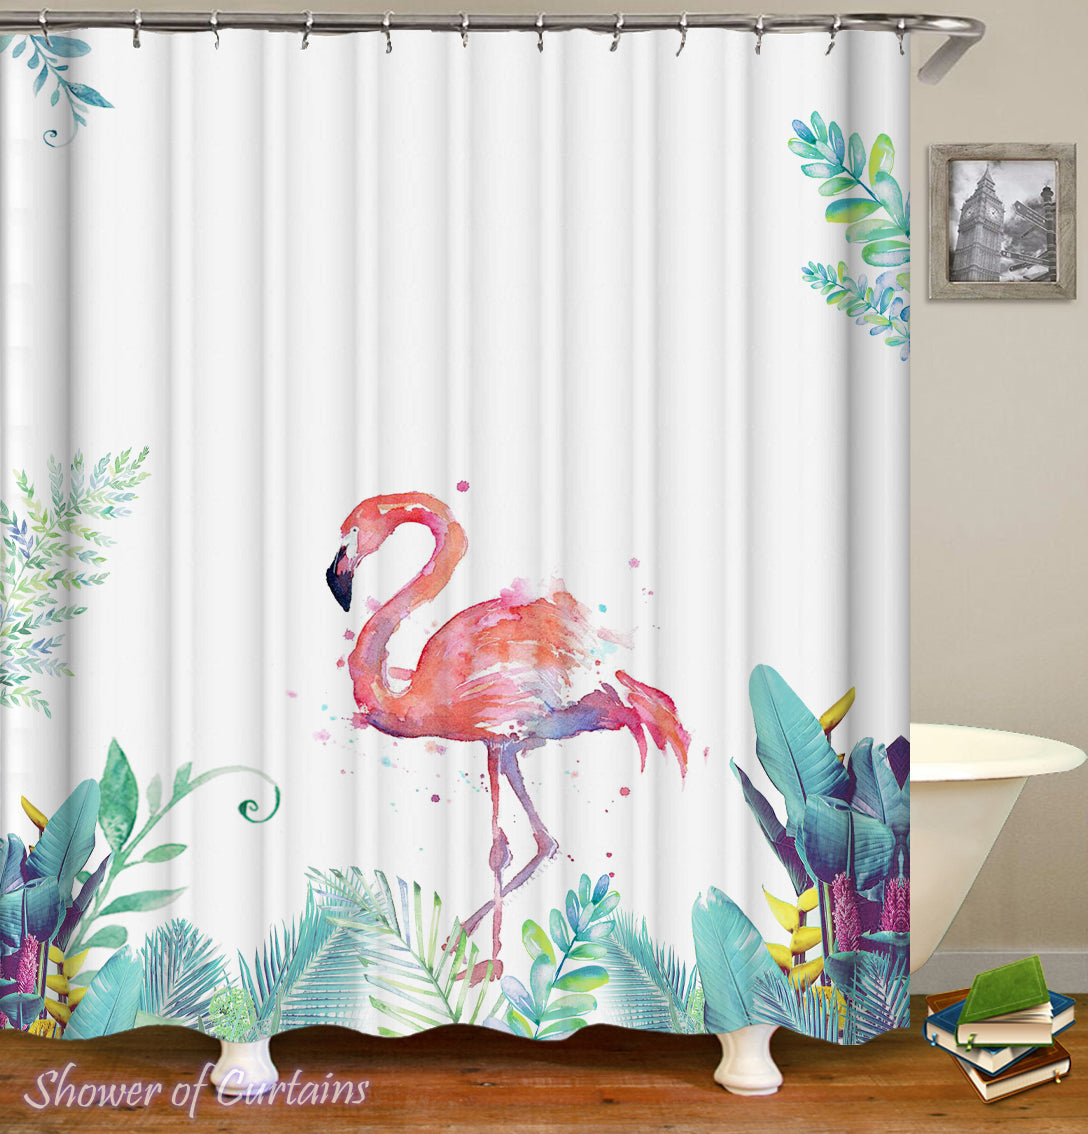 Shower Curtains Art Painting Flamingo Shower Of Curtains